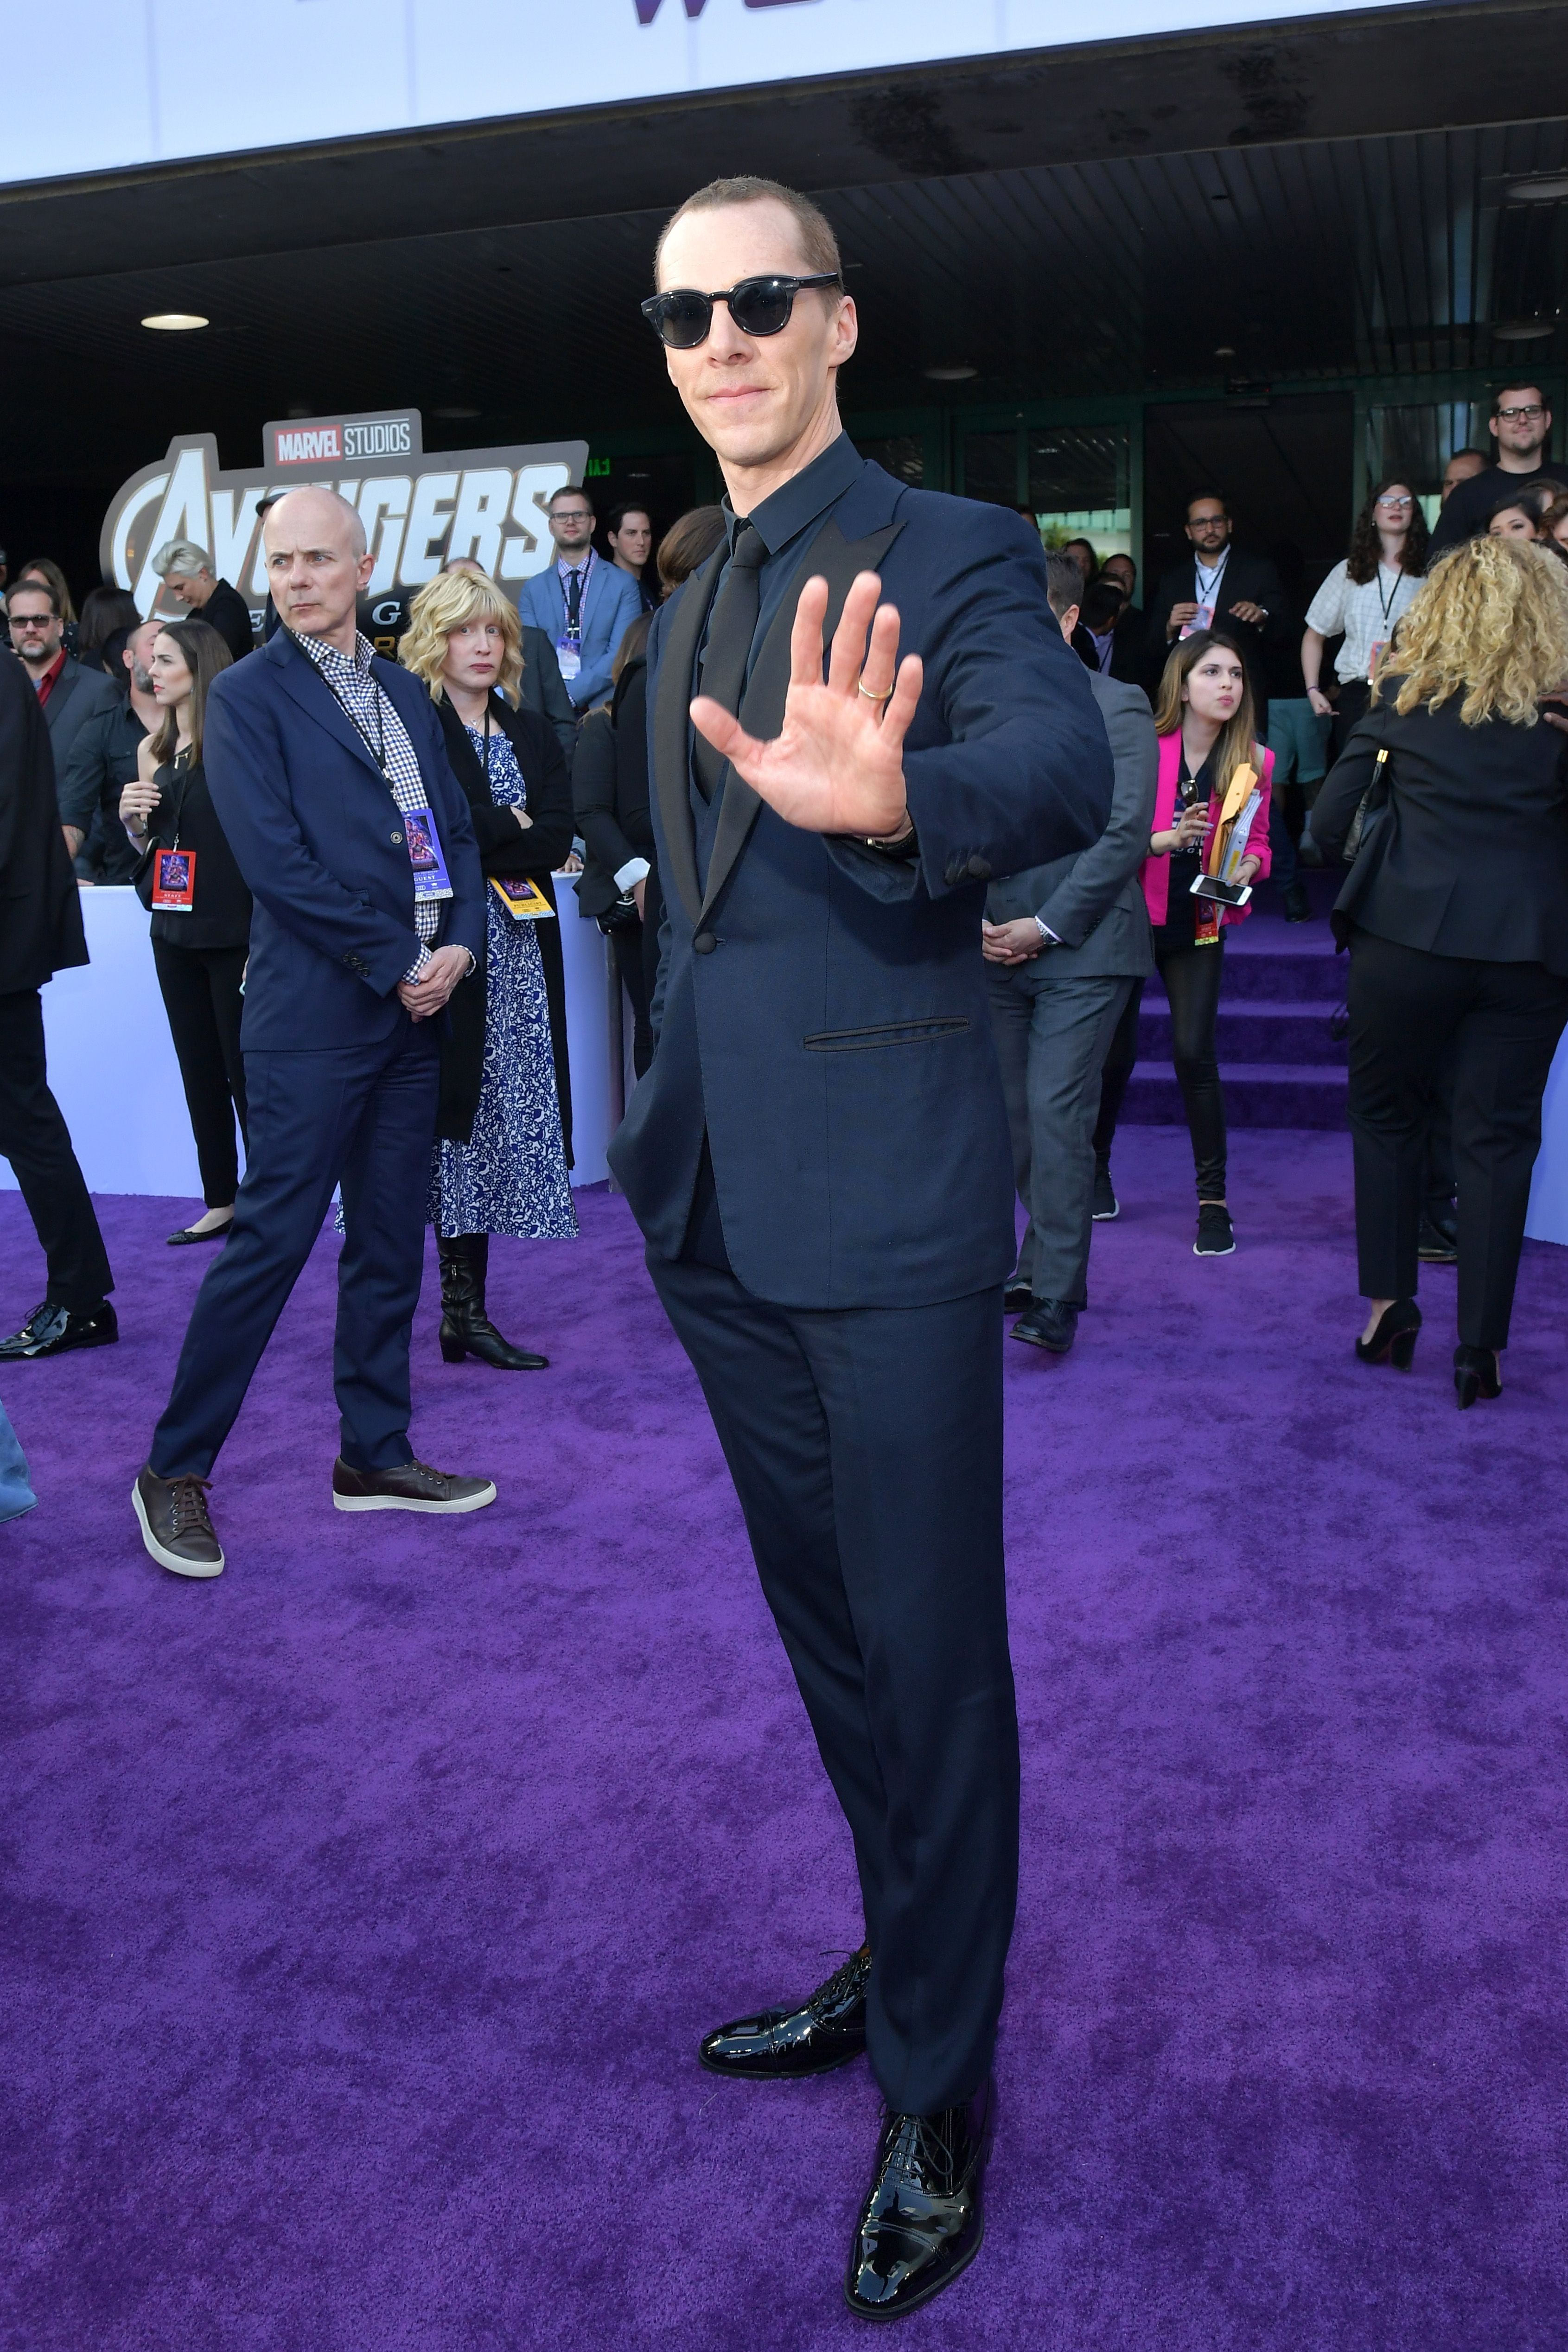 How Benedict Cumberbatch Stole The 'Avengers: Endgame' Red Carpet